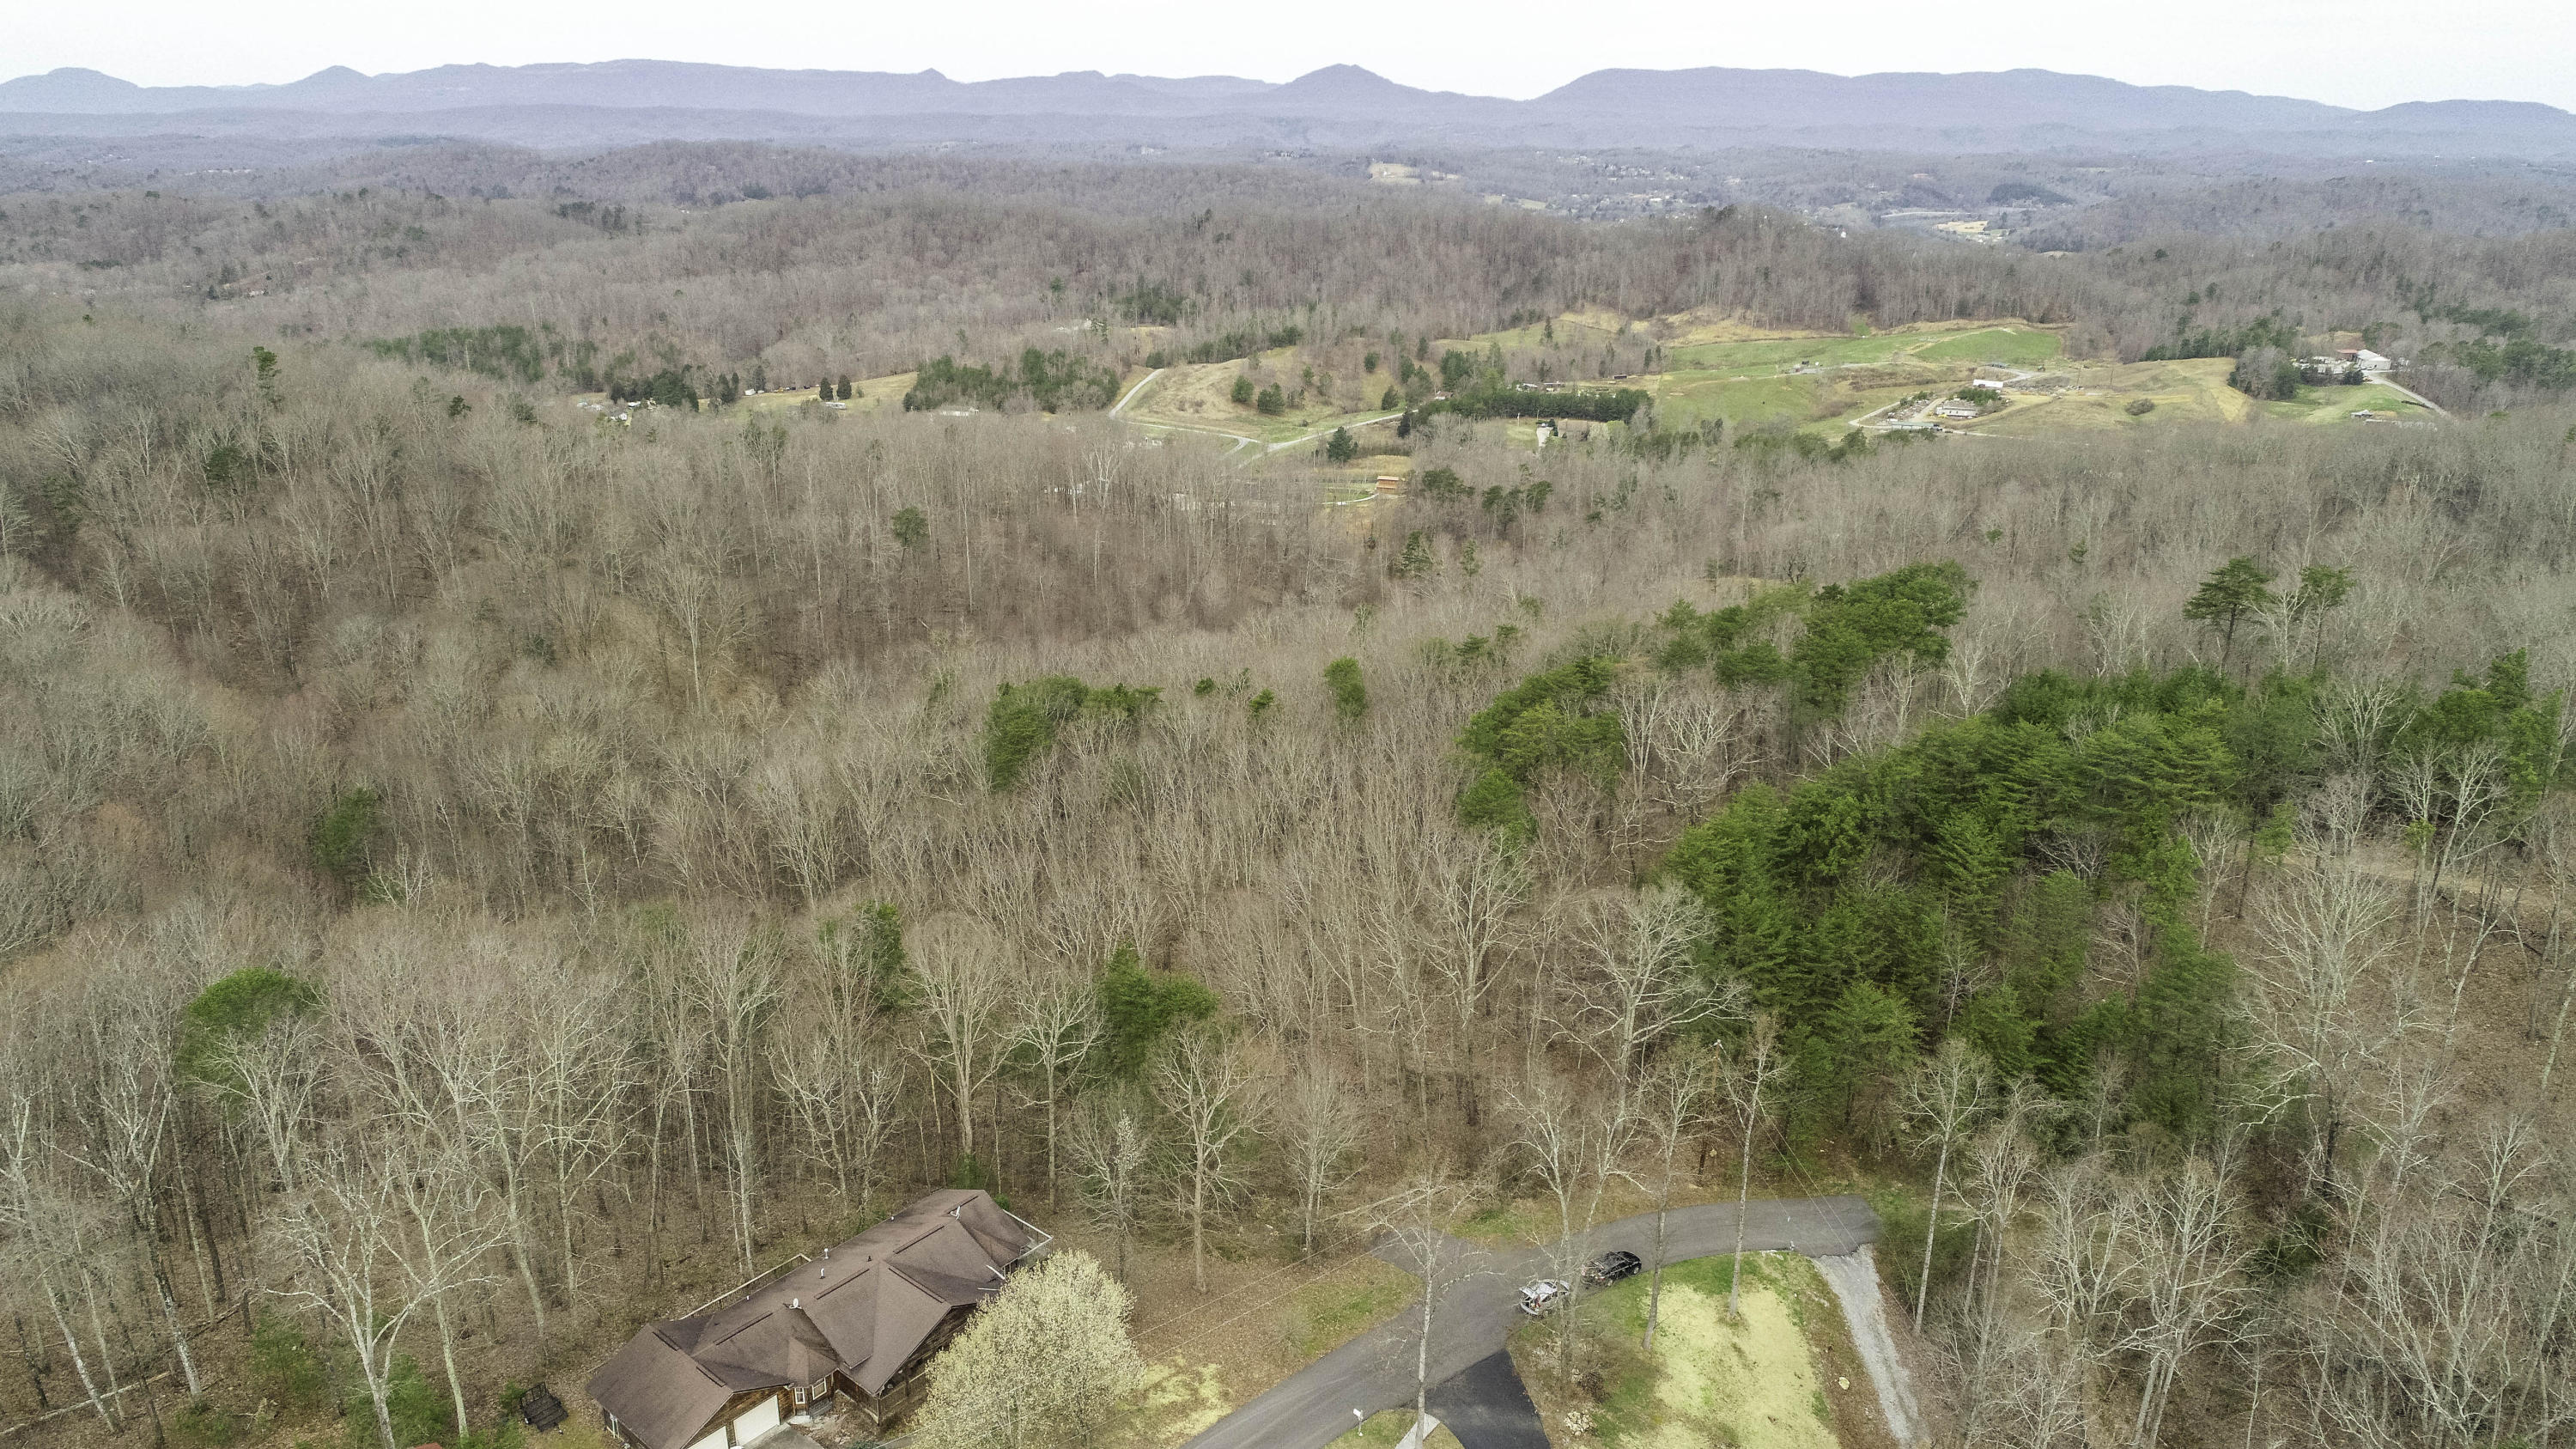 20190316154752503071000000-o Listings anderson county homes for sale